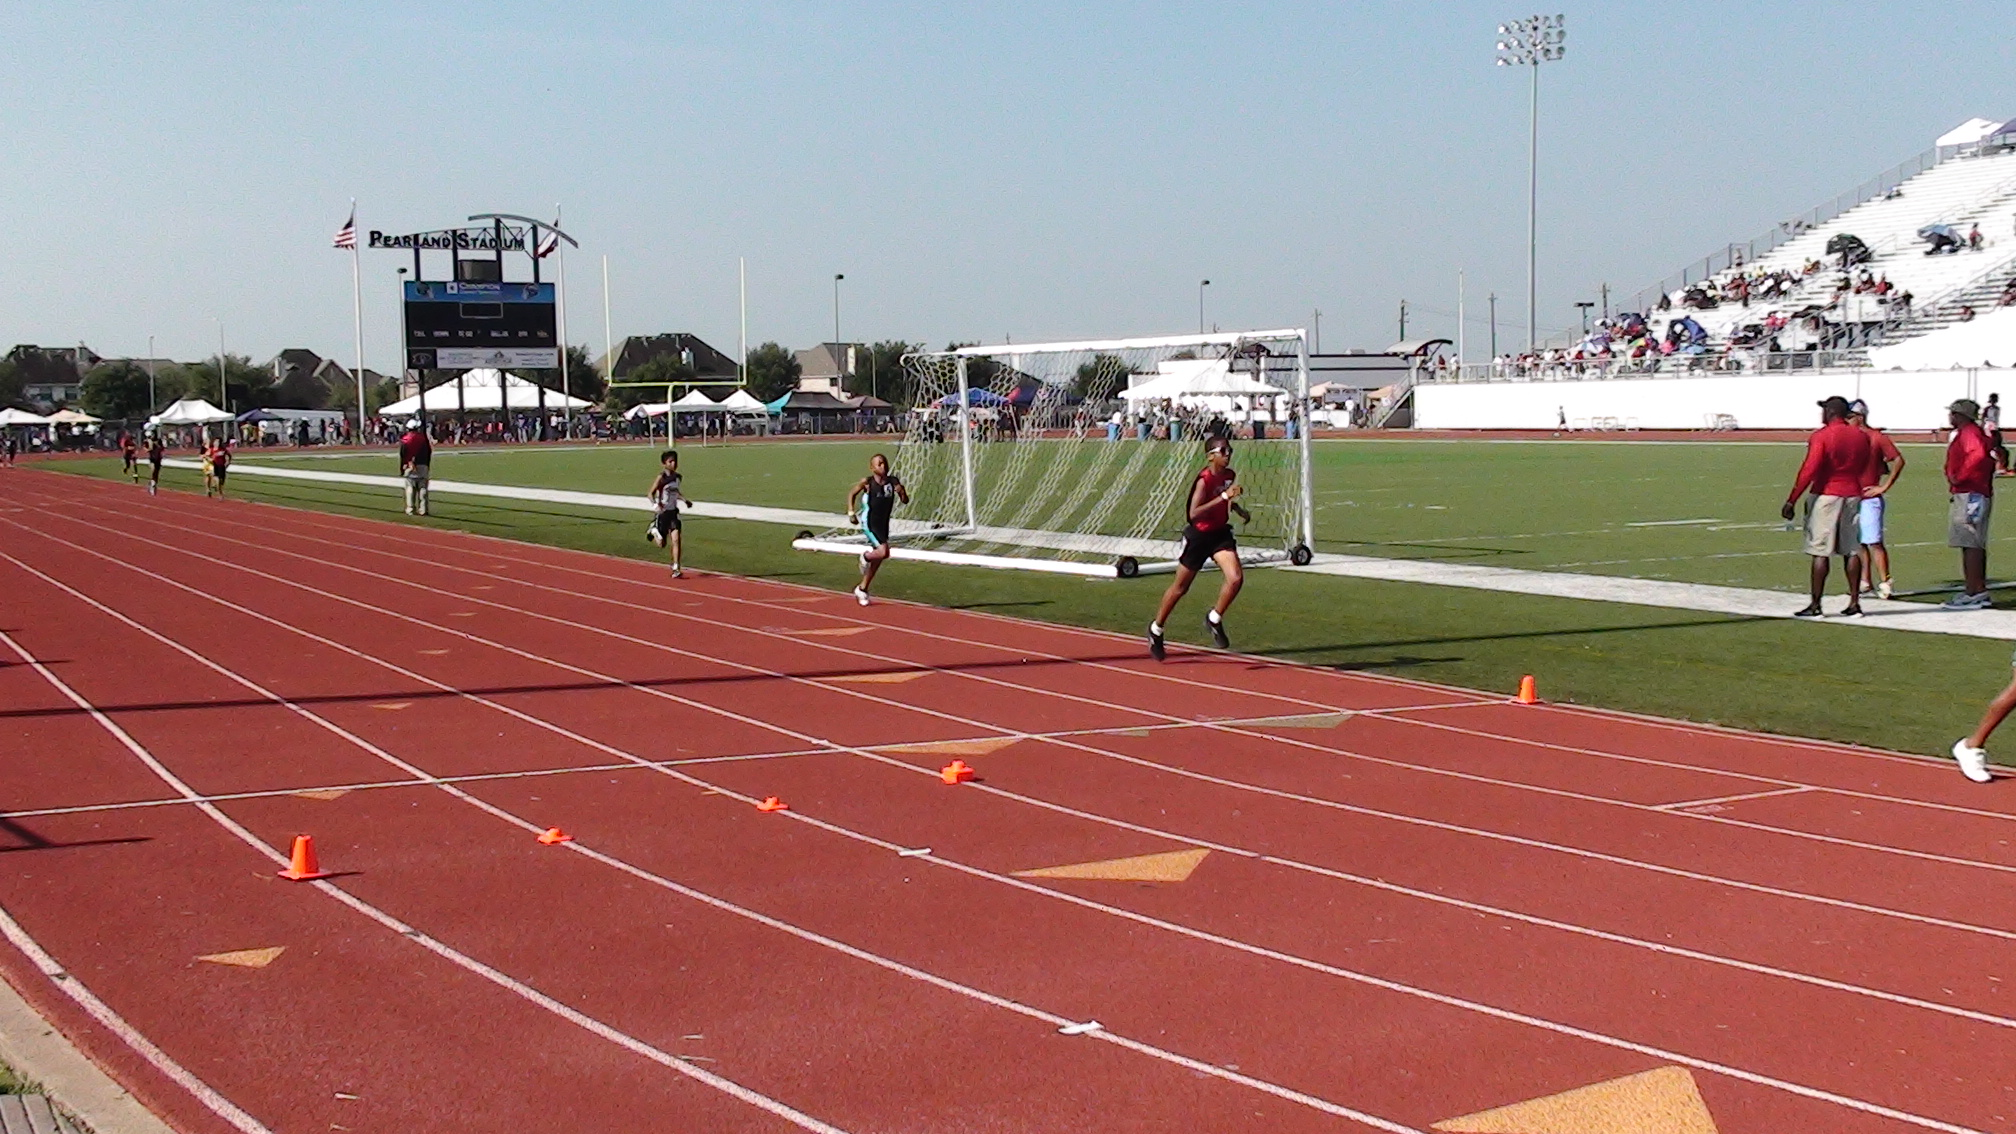 Maaz Syed in the 3000m